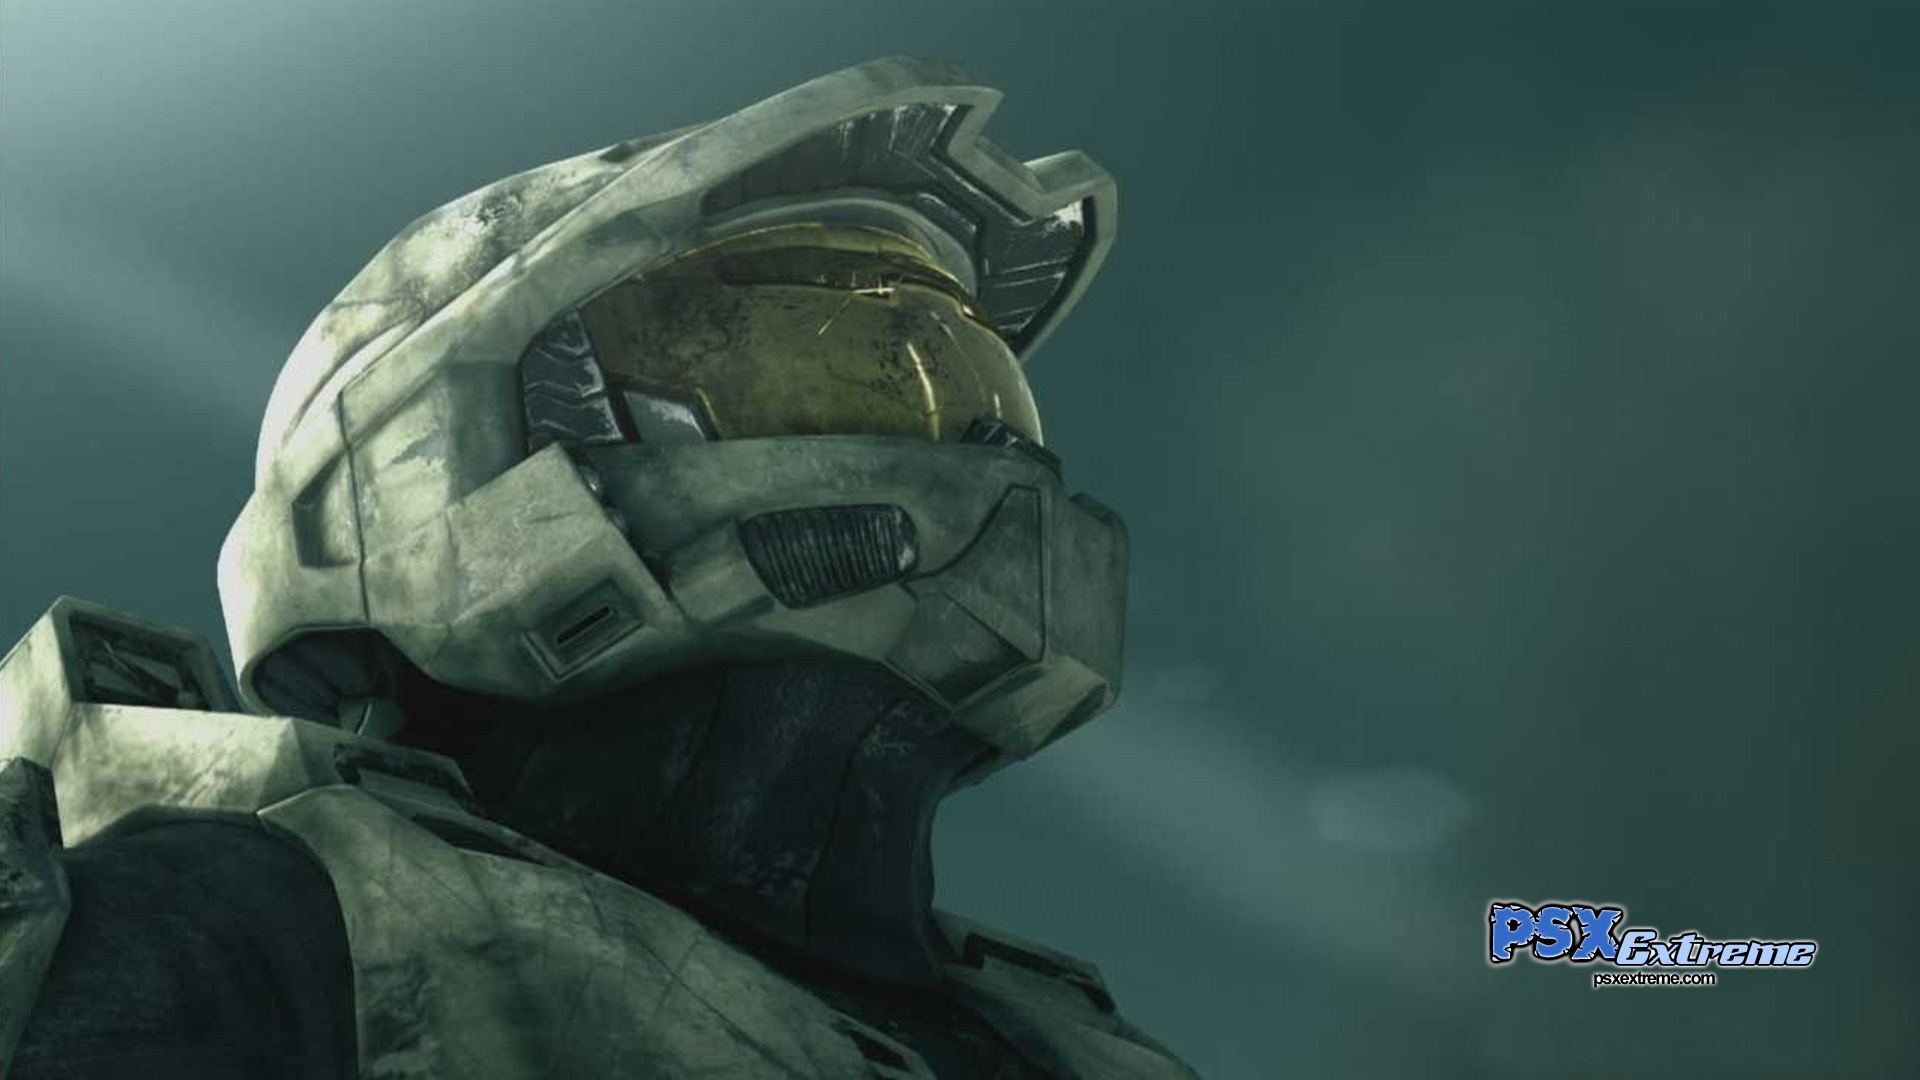 wallpapers ps3 backgrounds computer halo3 halo 1920x1080 1920x1080